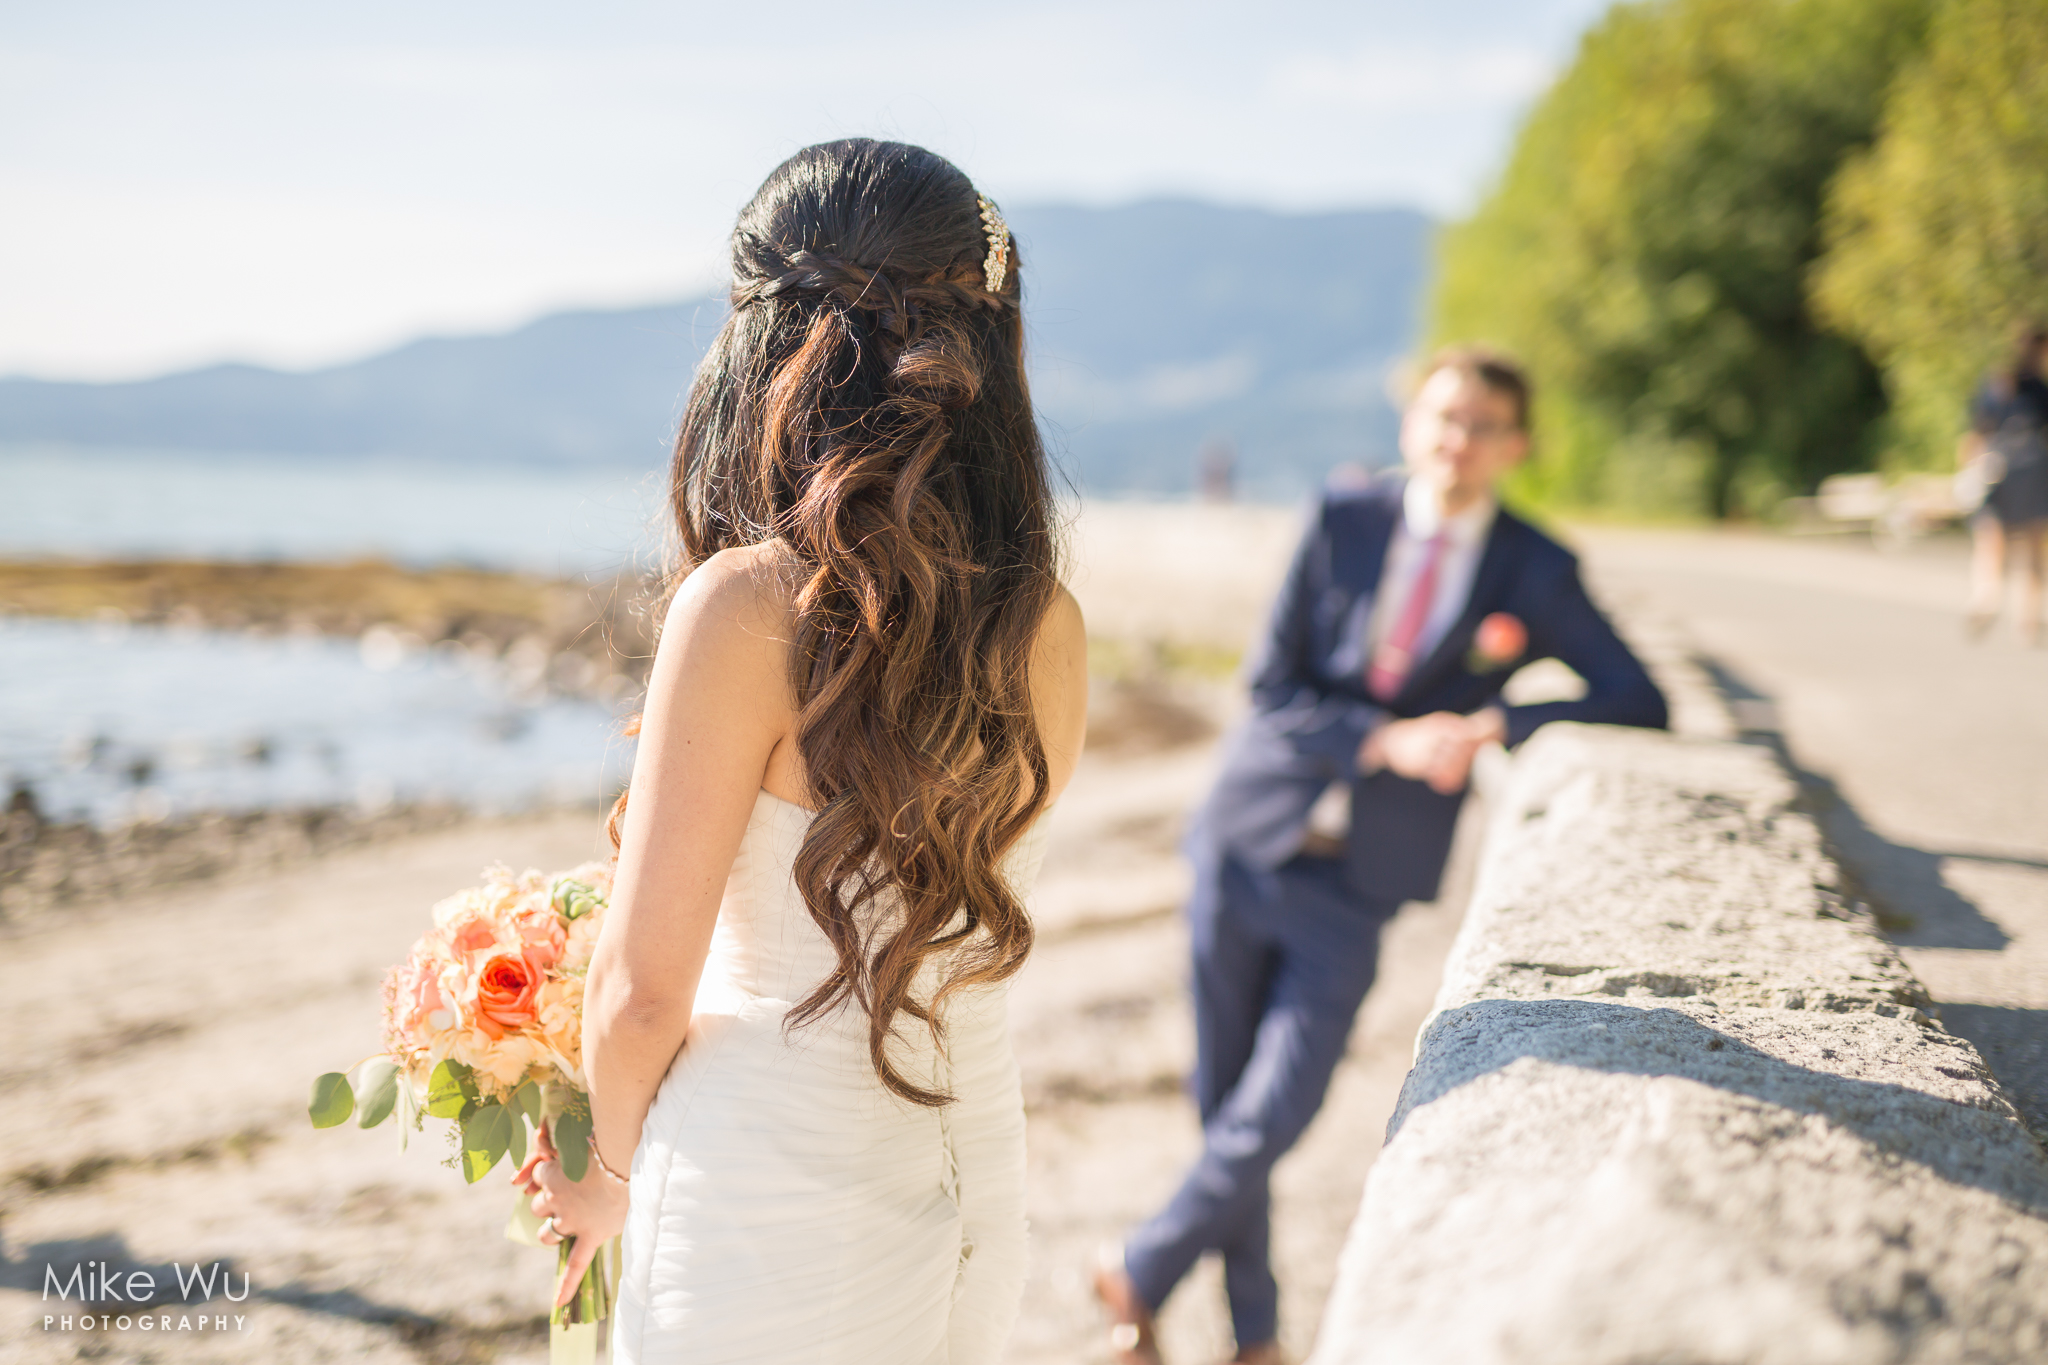 wedding, stanley park, seawall, flowers, teahouse, bouquet, beach, rocks, water, trees, groom, bride, vancouver wedding photographer, couple, look, hair, stone